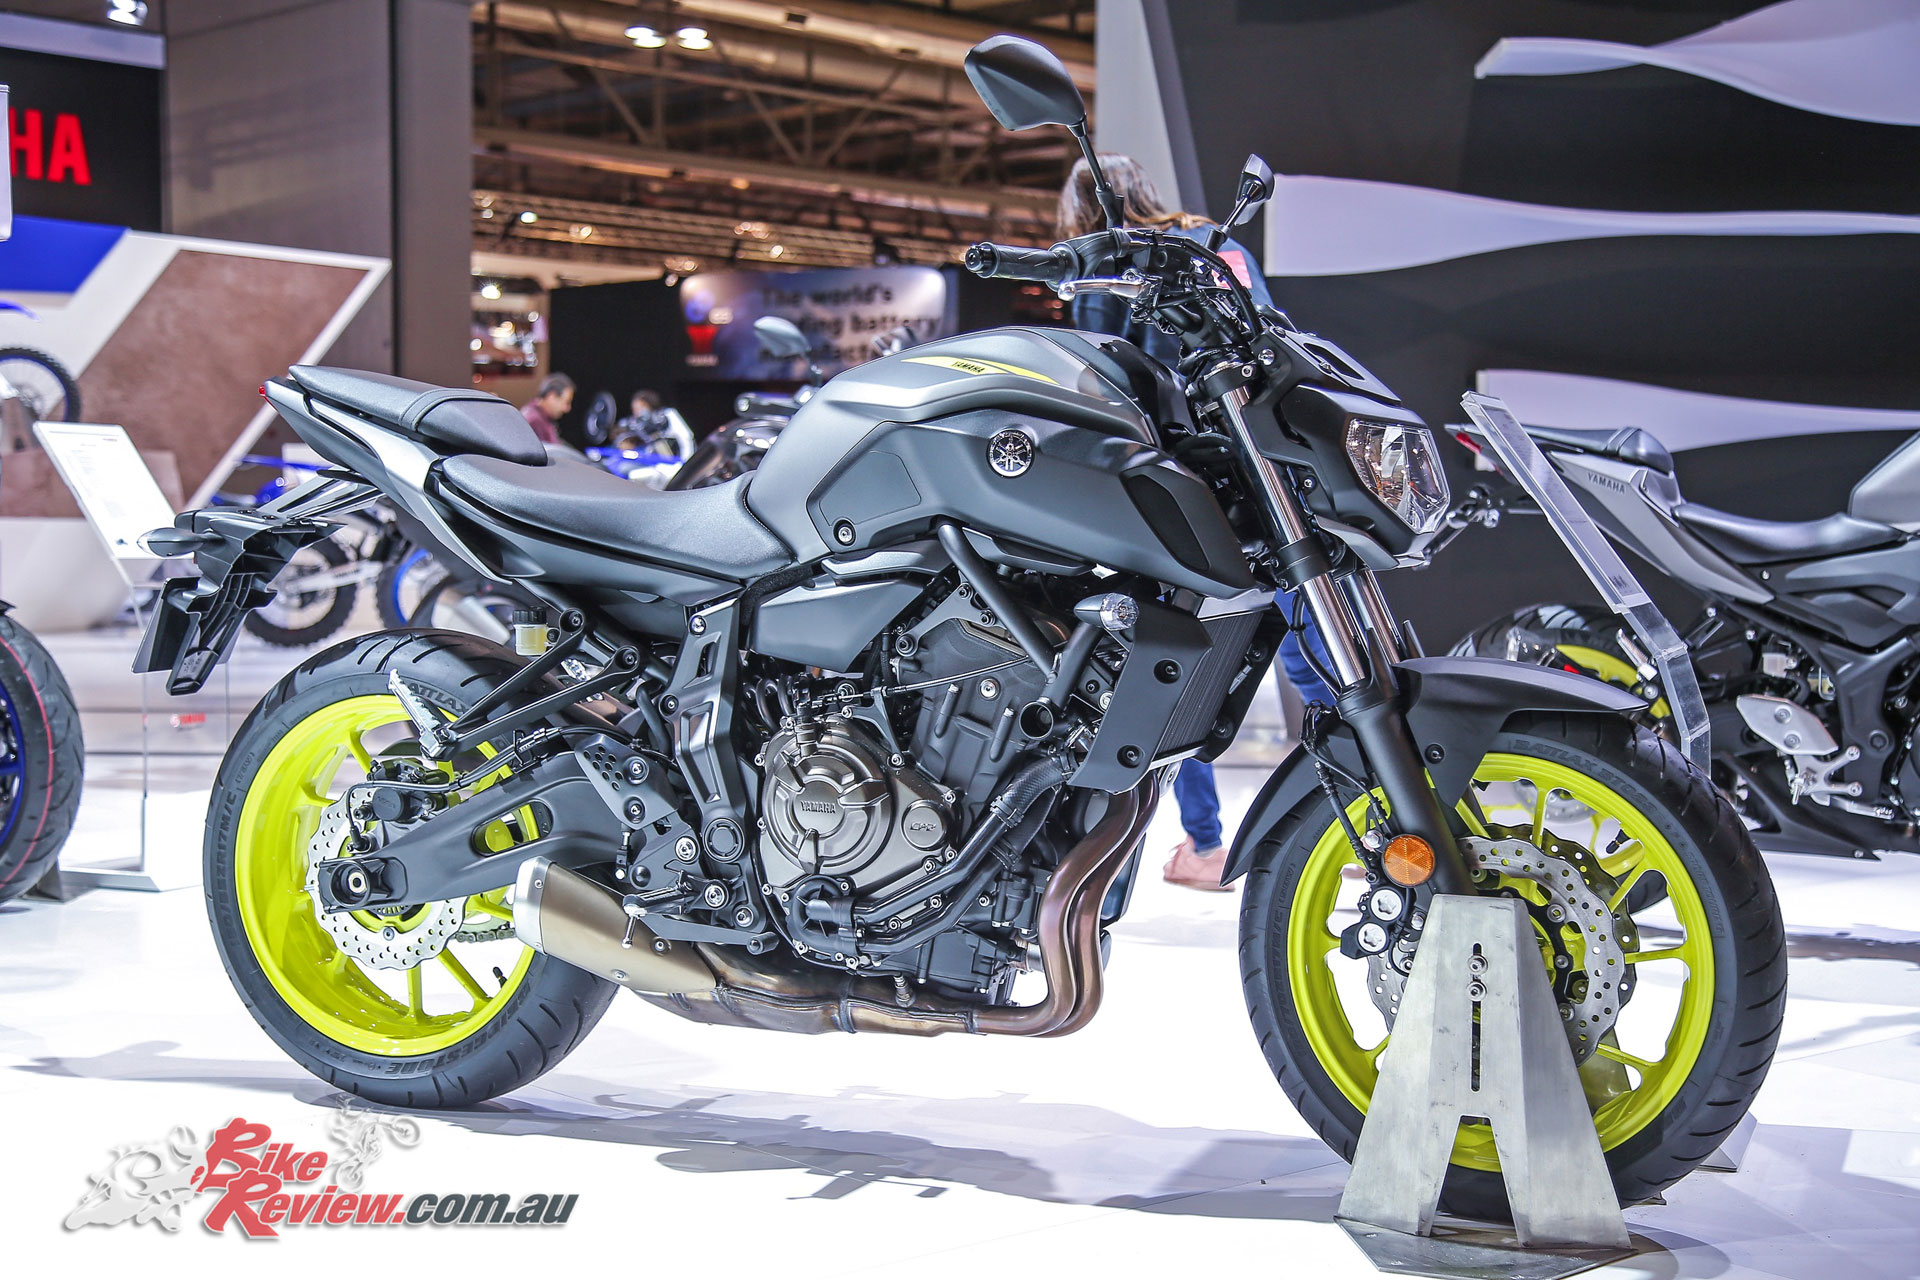 The MT-07 was also updated, as was the YZF-R1M, and a Super Tenere Raid Edition was announced